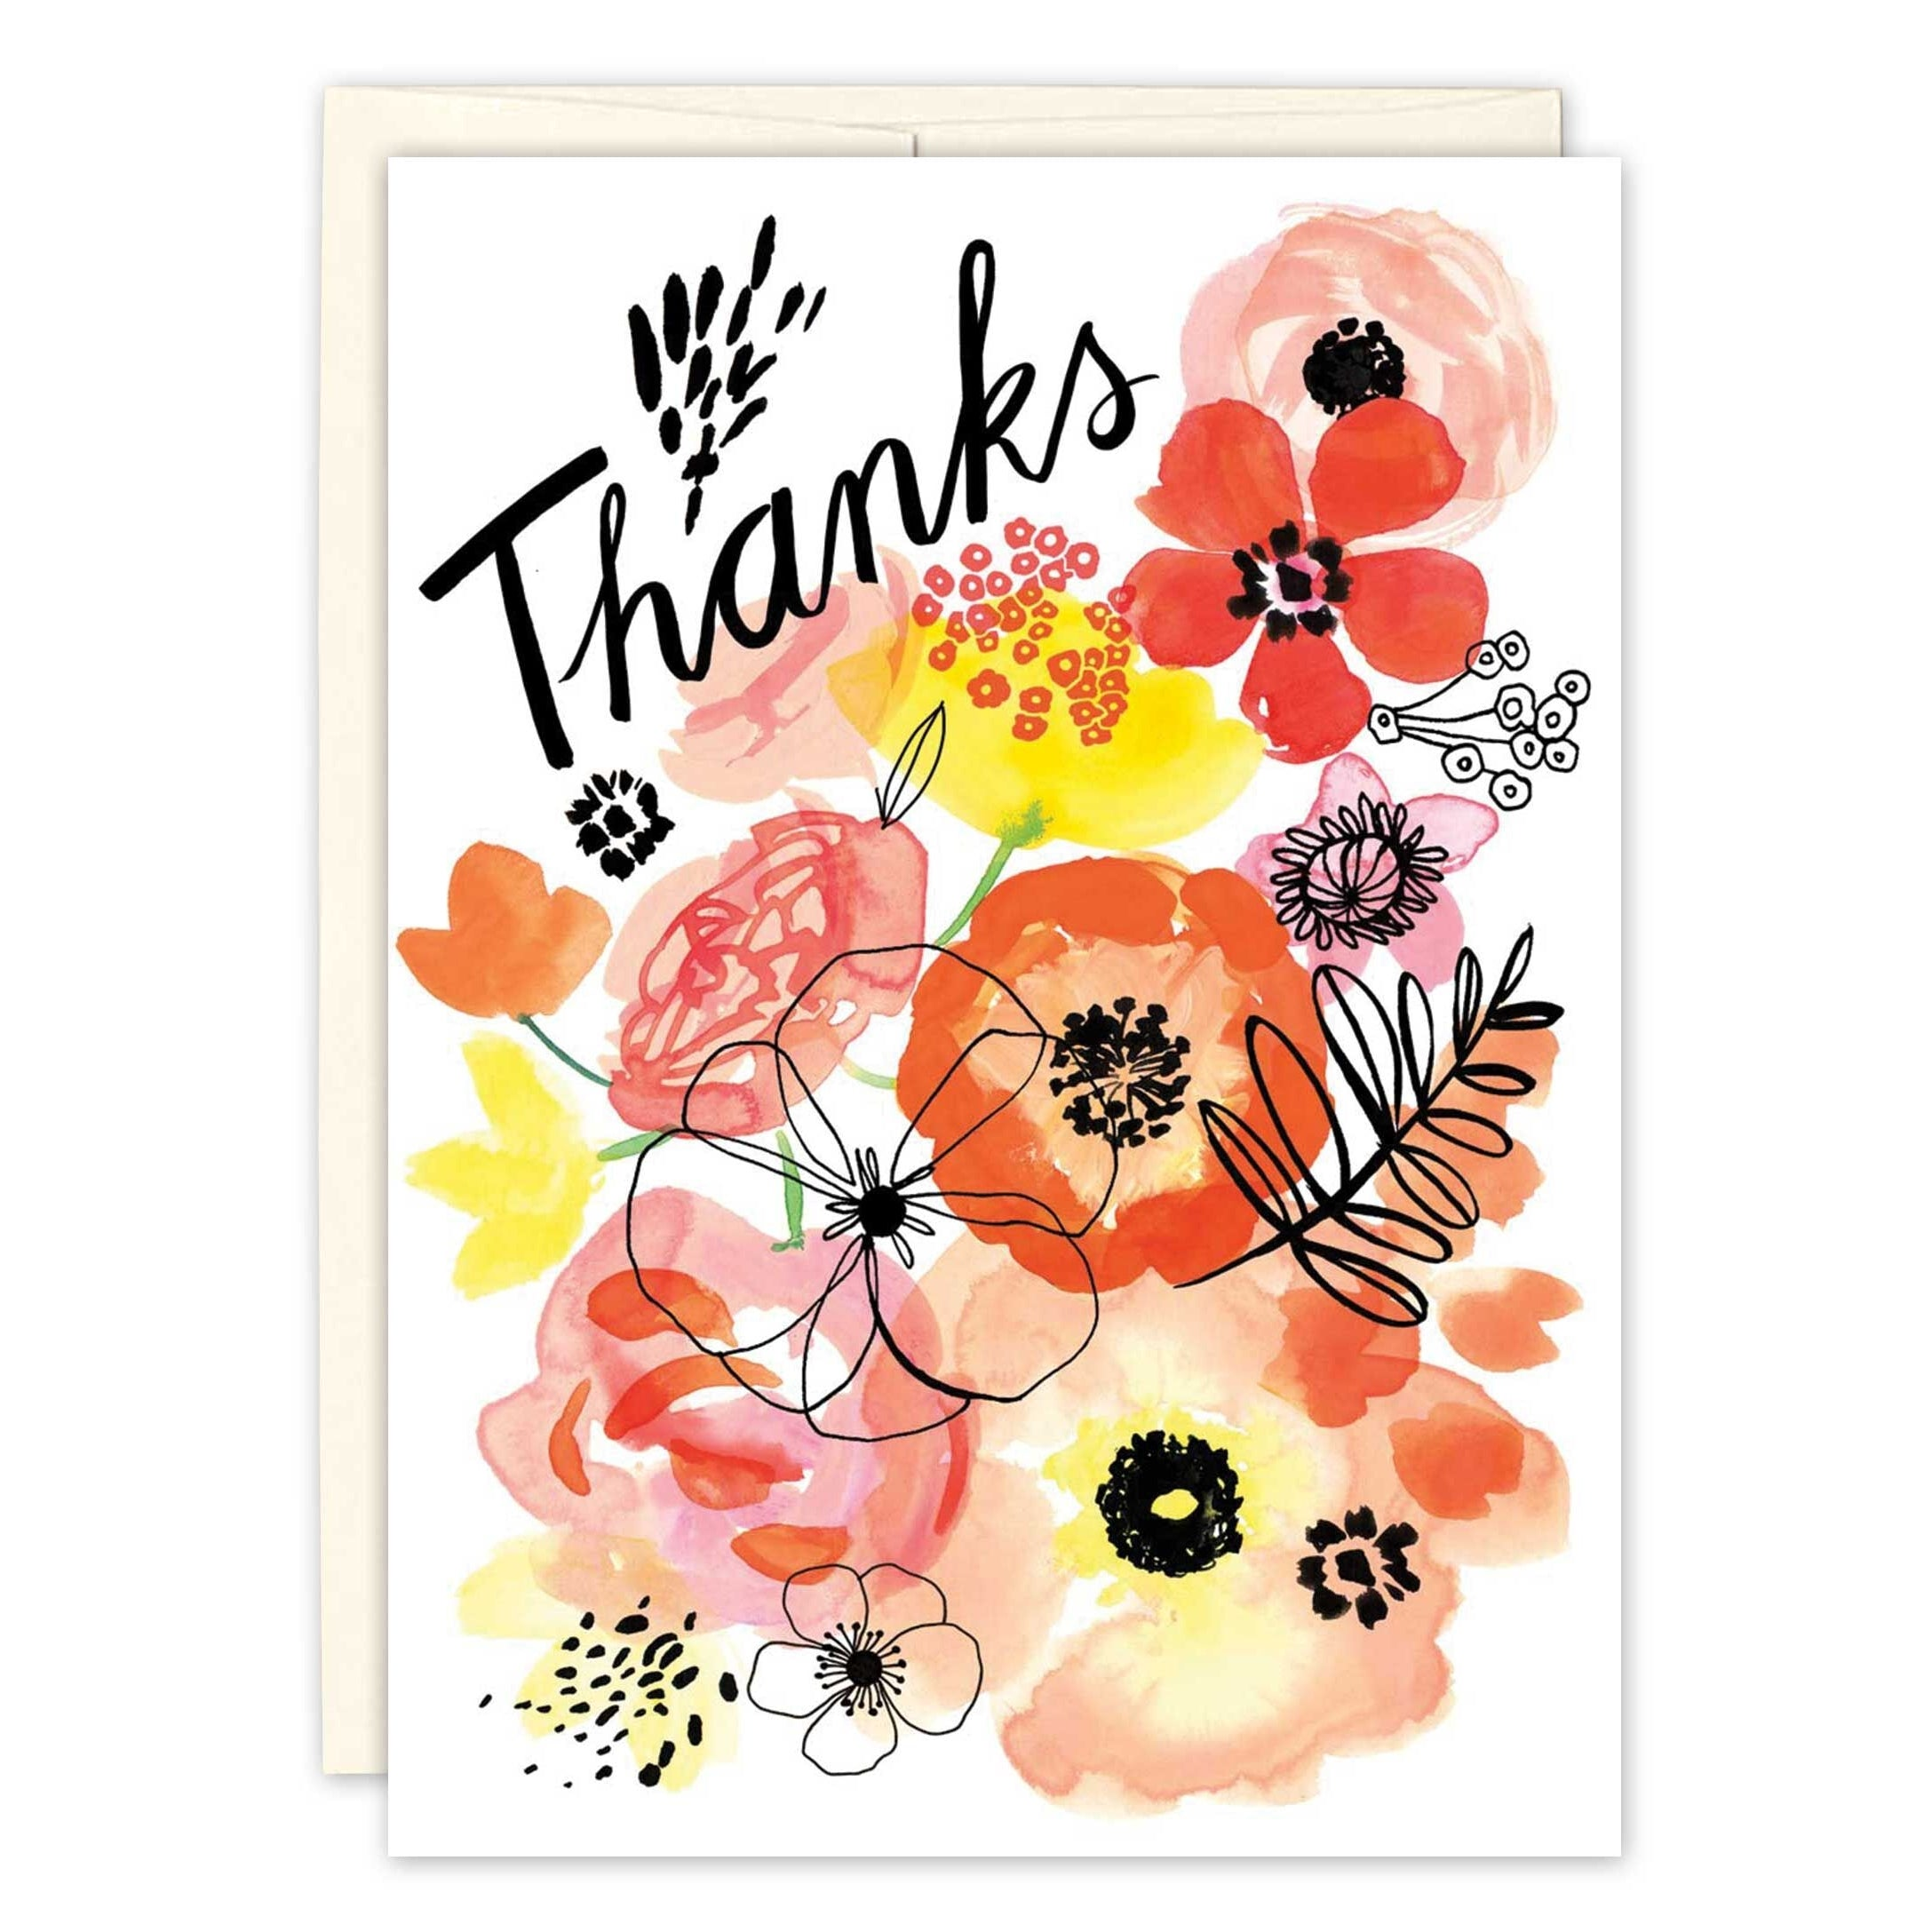 Biely & Shoaf - Greeting Card - Floral Thanks